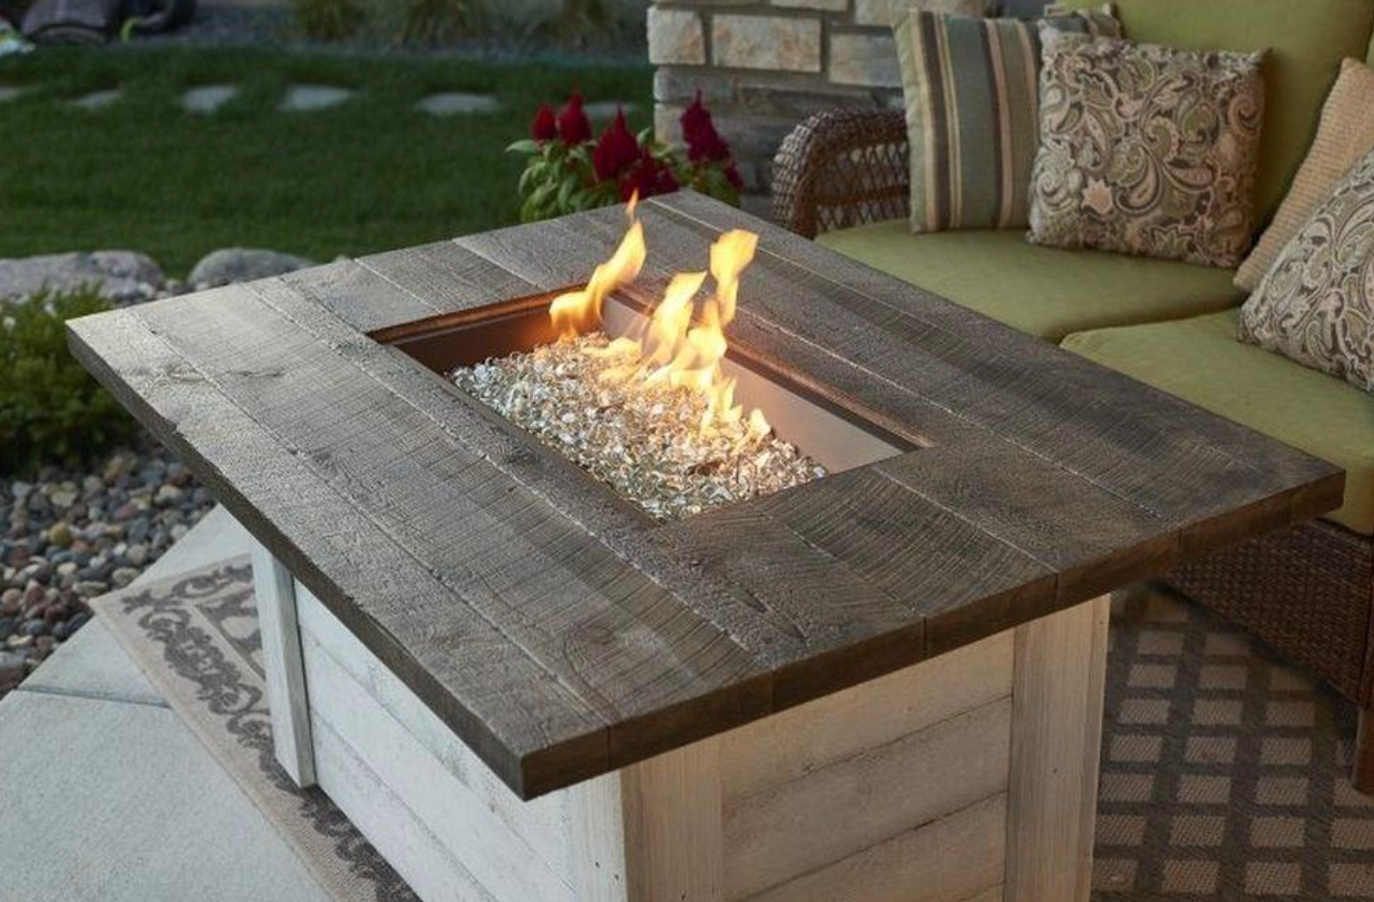 The Outdoor Greatroom Company Alc 1224 Alcott 48 Rectangular Gas Fire Pit Table Gas Fire Pits Outdoor Gas Fire Pit Table Natural Gas Fire Pit